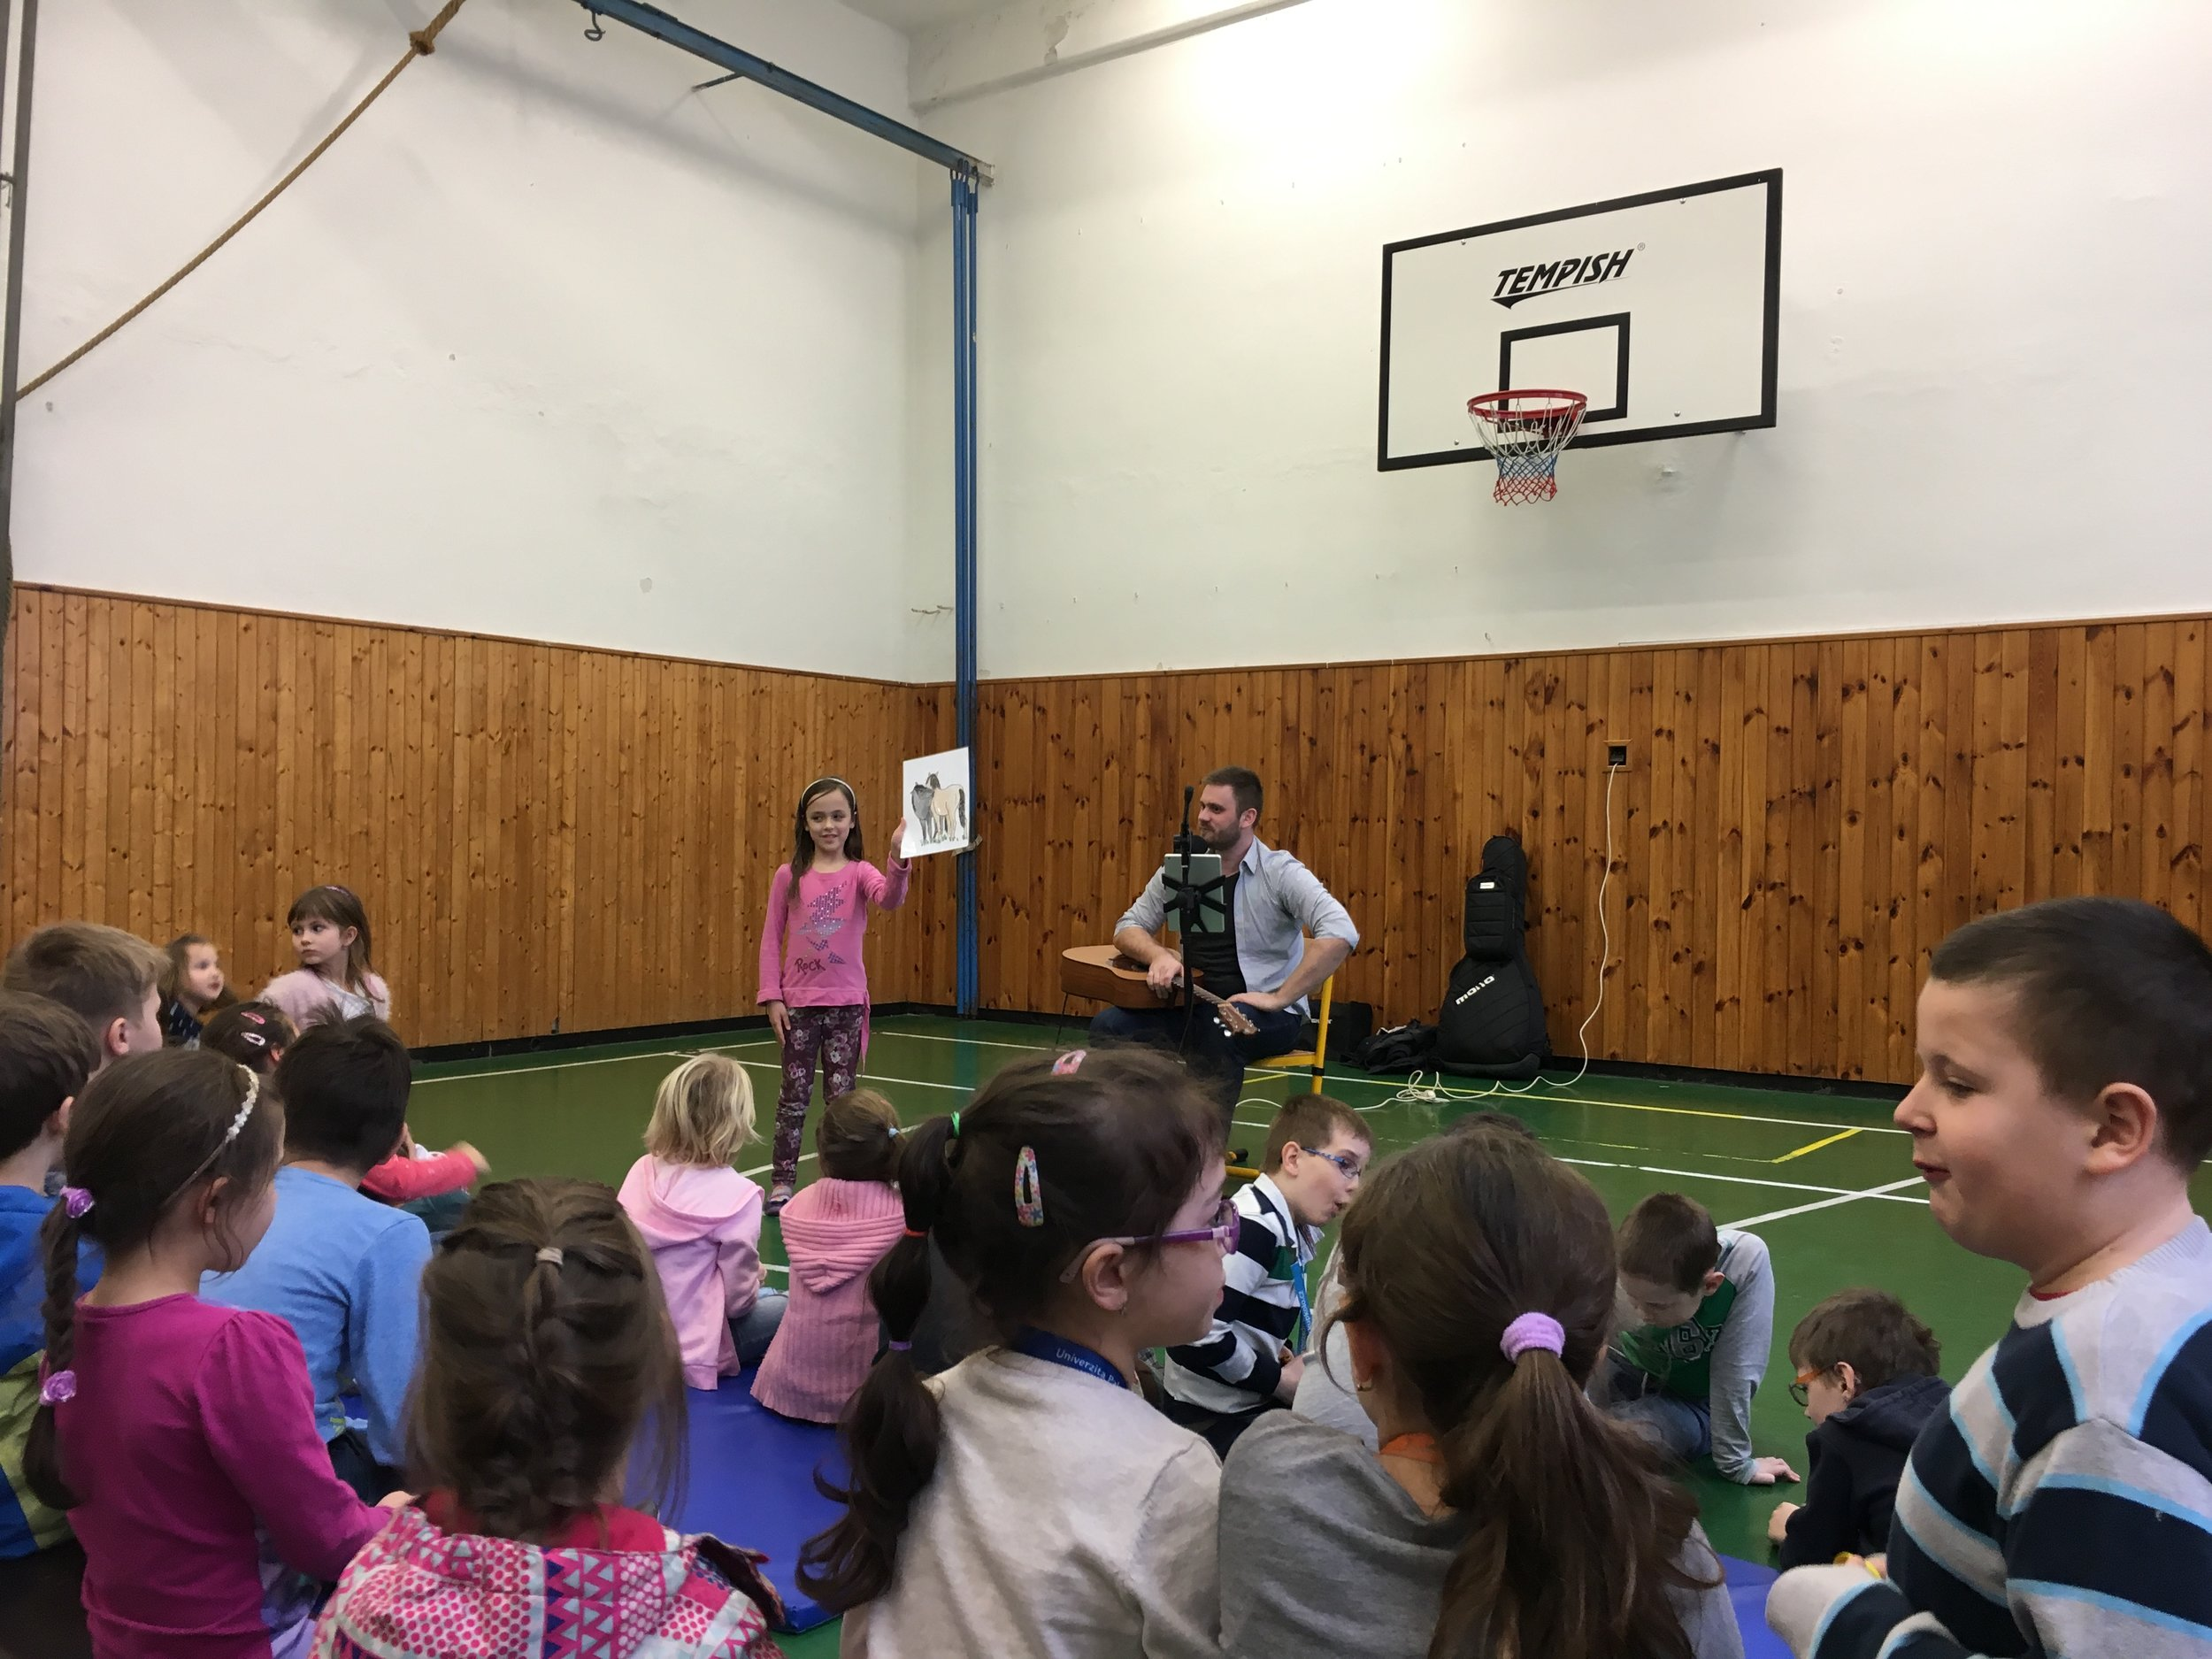 There was a special guest at Addey's school, and she was called on to present the next subject.